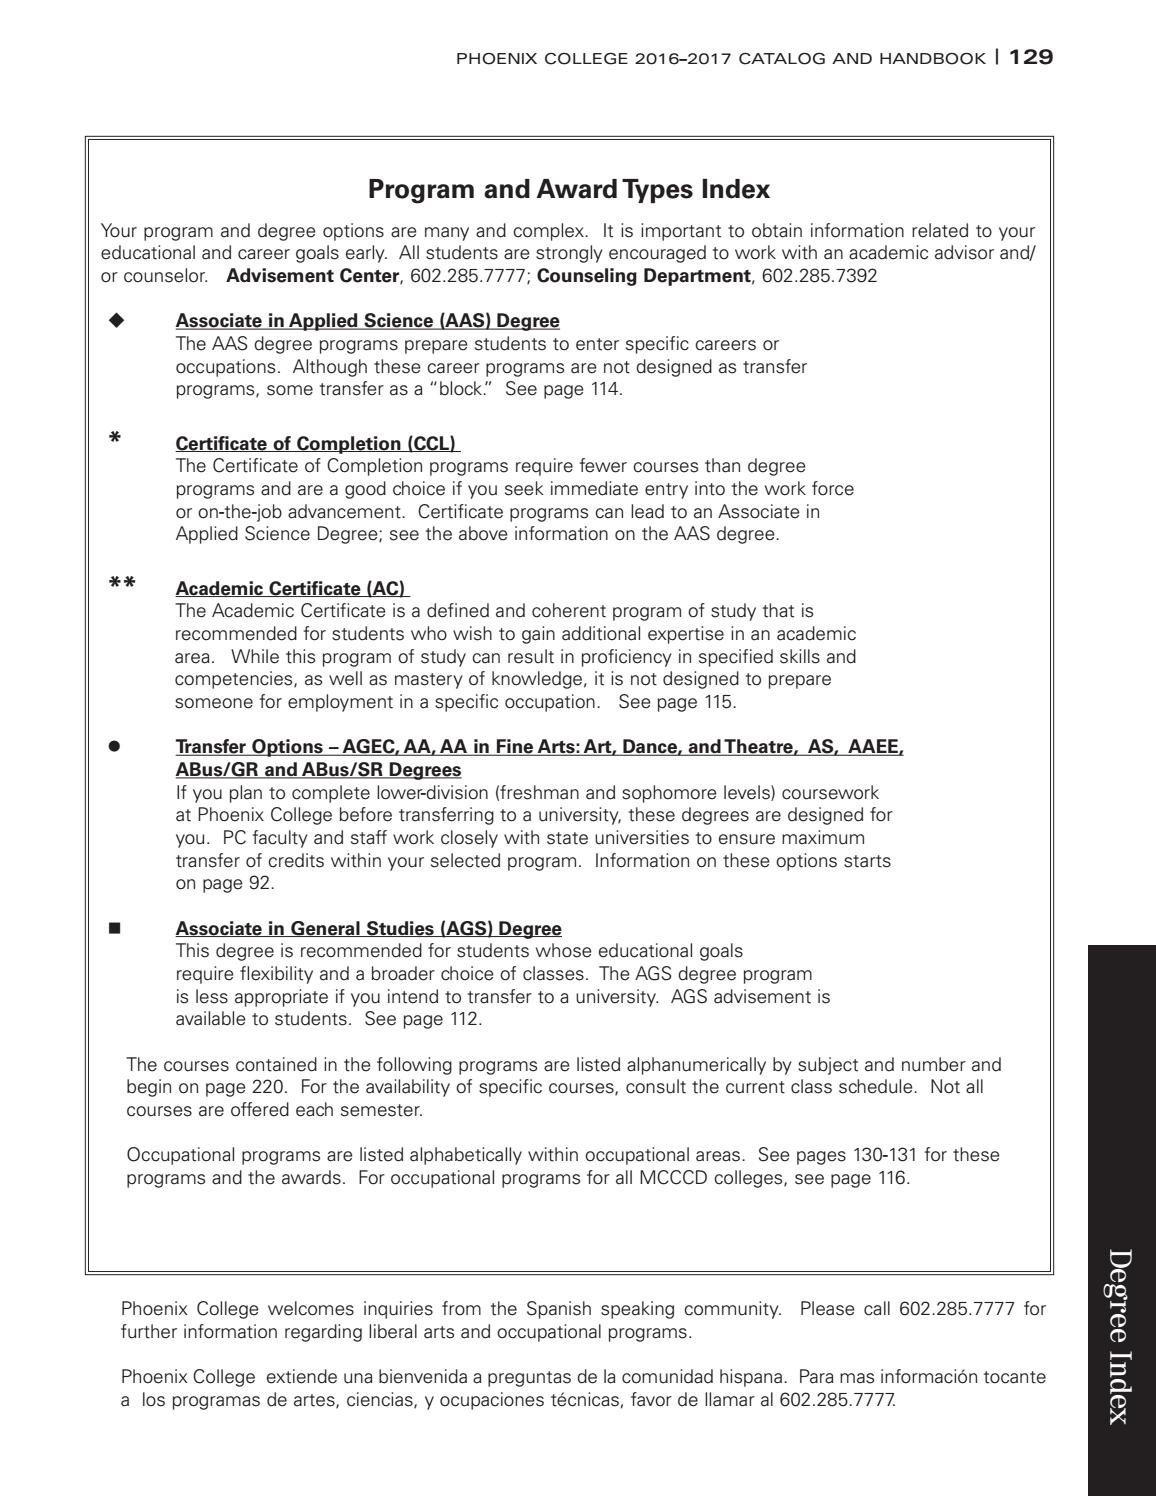 Phoenix college 2016 17 catalog handbook by the maricopa phoenix college 2016 17 catalog handbook by the maricopa community colleges issuu xflitez Choice Image